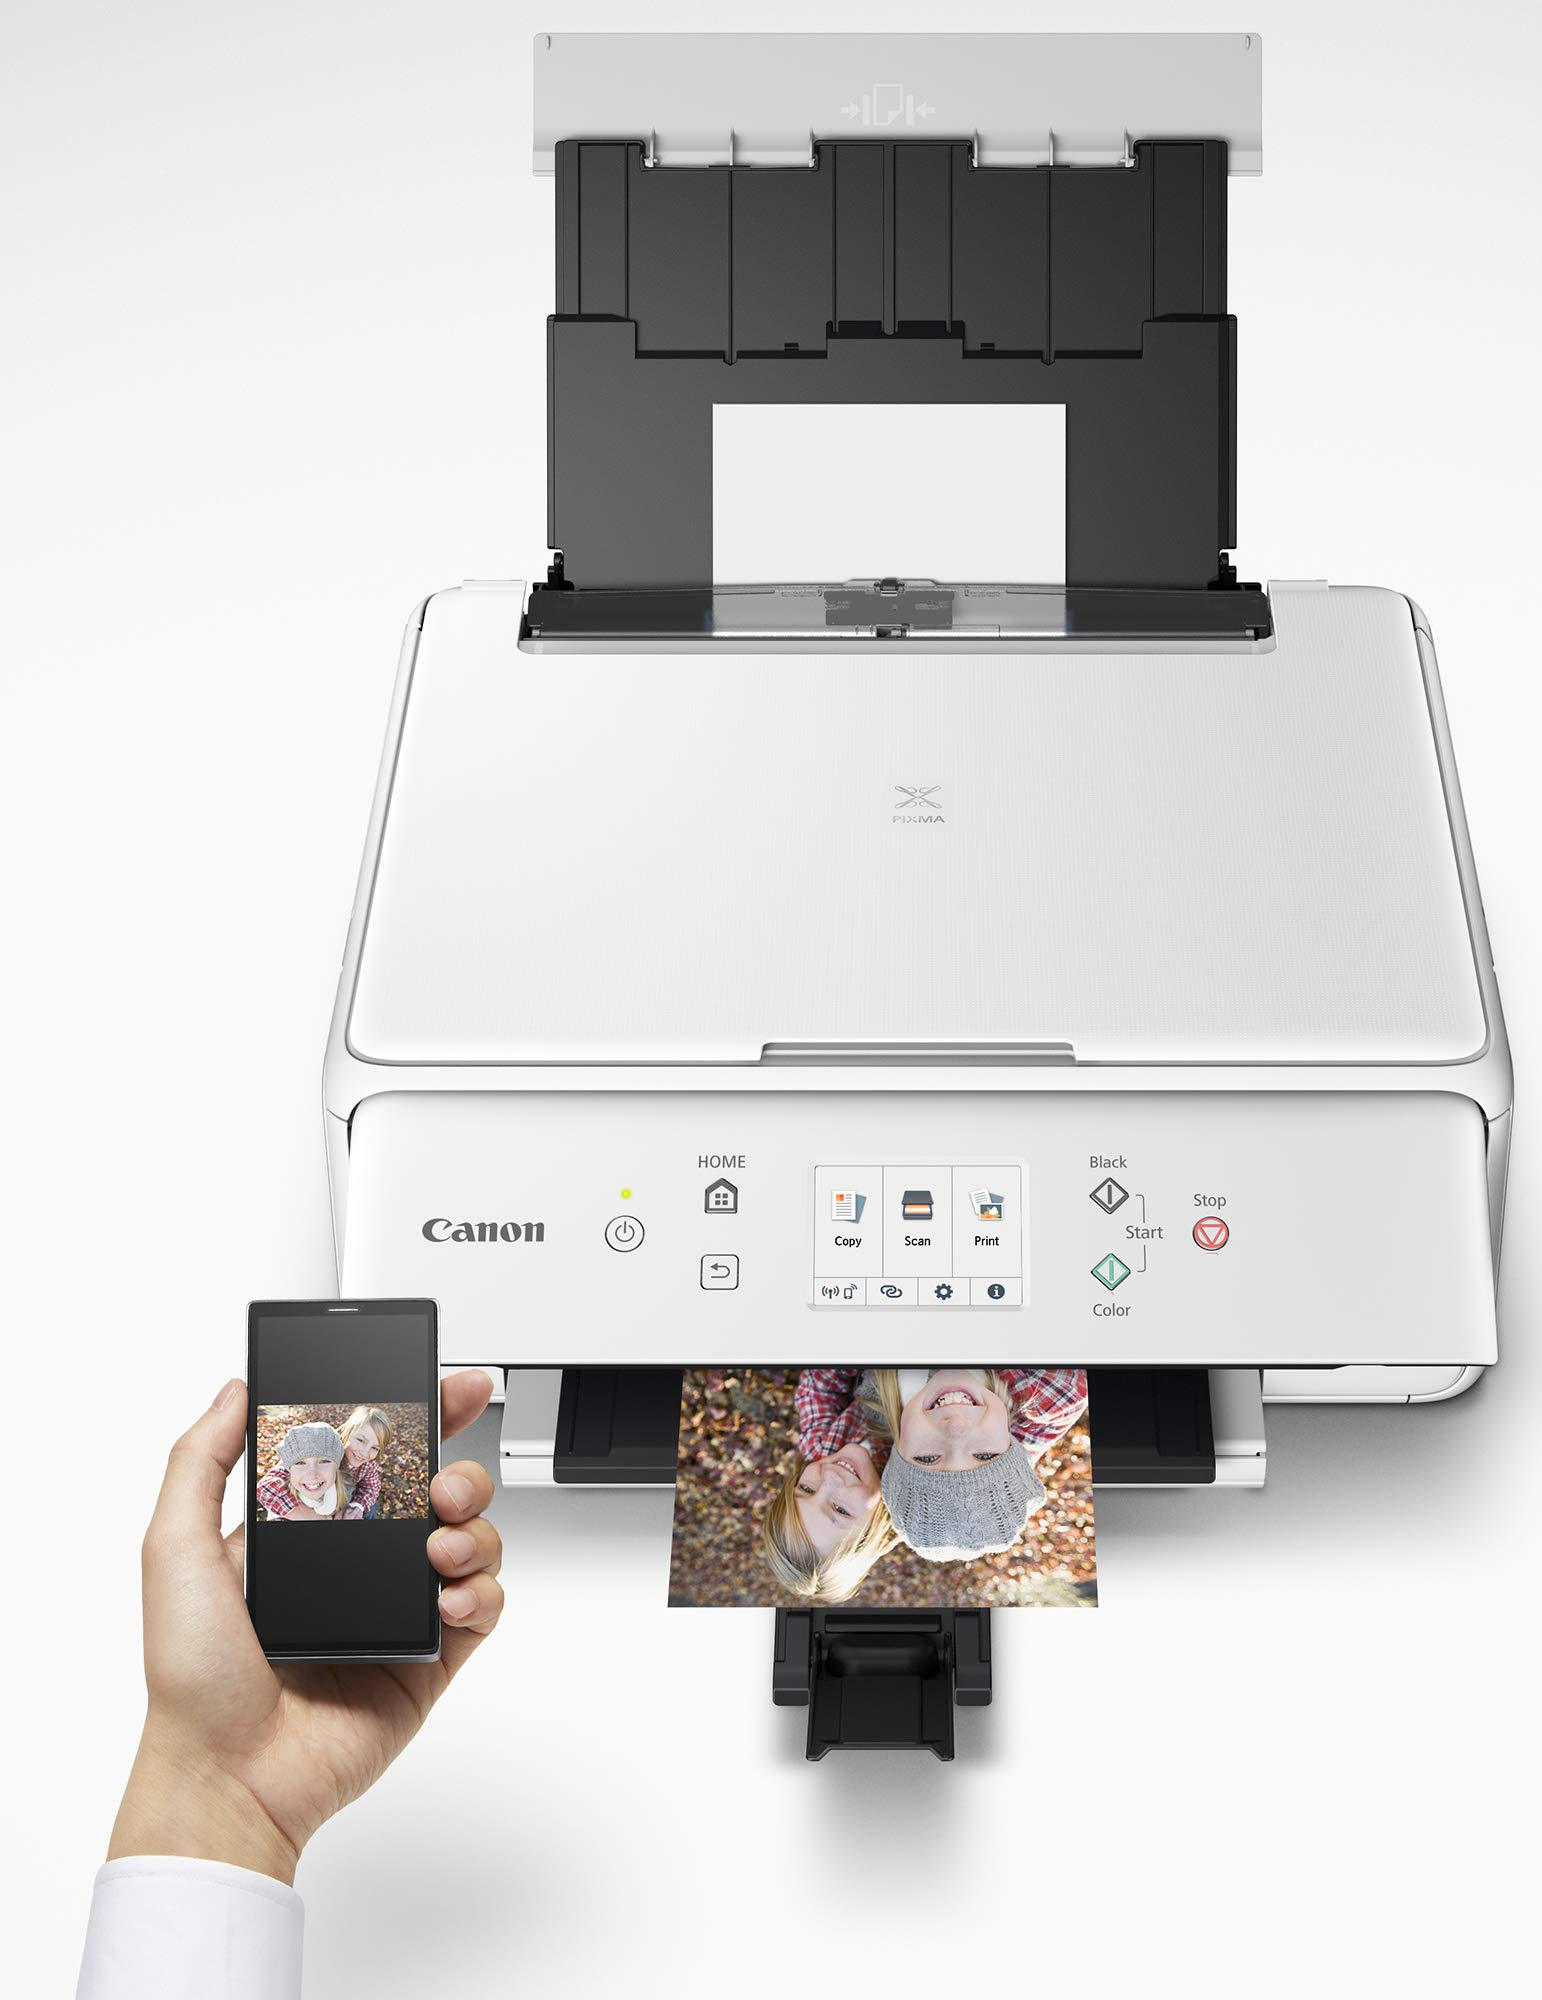 Canon PIXMA TS6220 Wireless All in One Printer with Mobile Printing, White by Canon (Image #4)